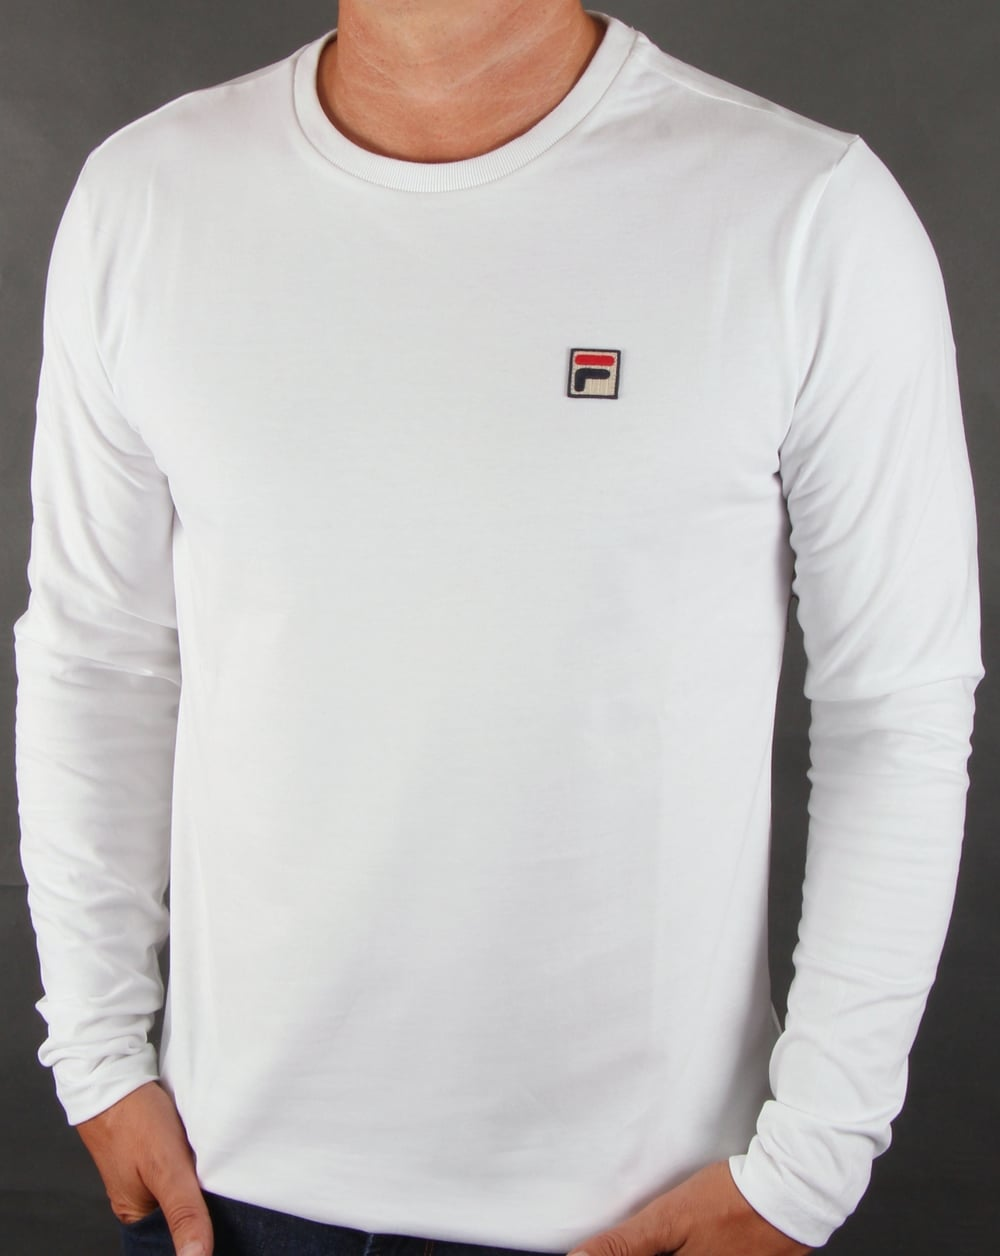 Fila vintage long sleeve t shirt white tee mens Mens long sleeve white t shirt